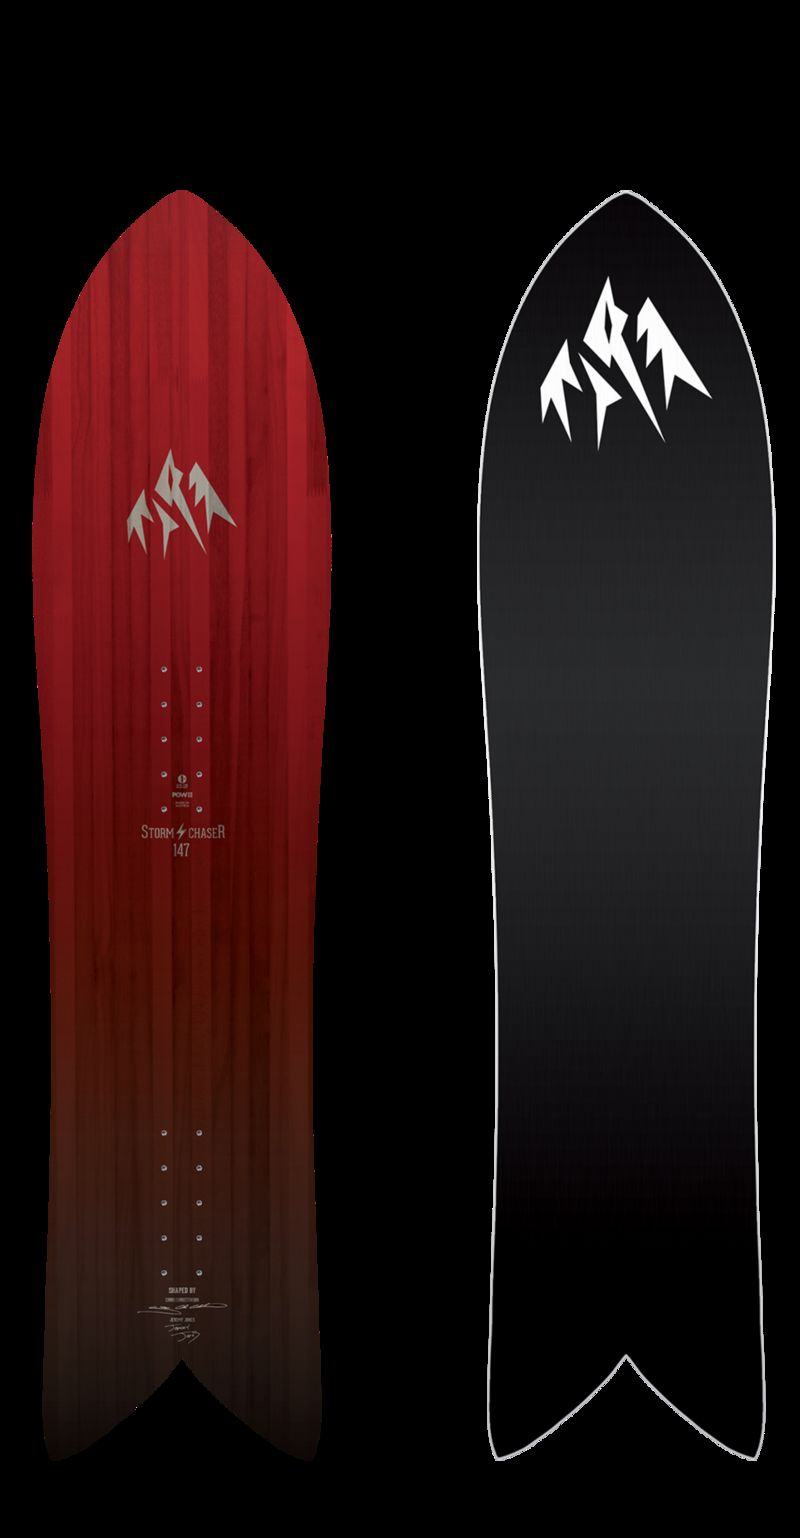 Surf-Inspired Snowboards